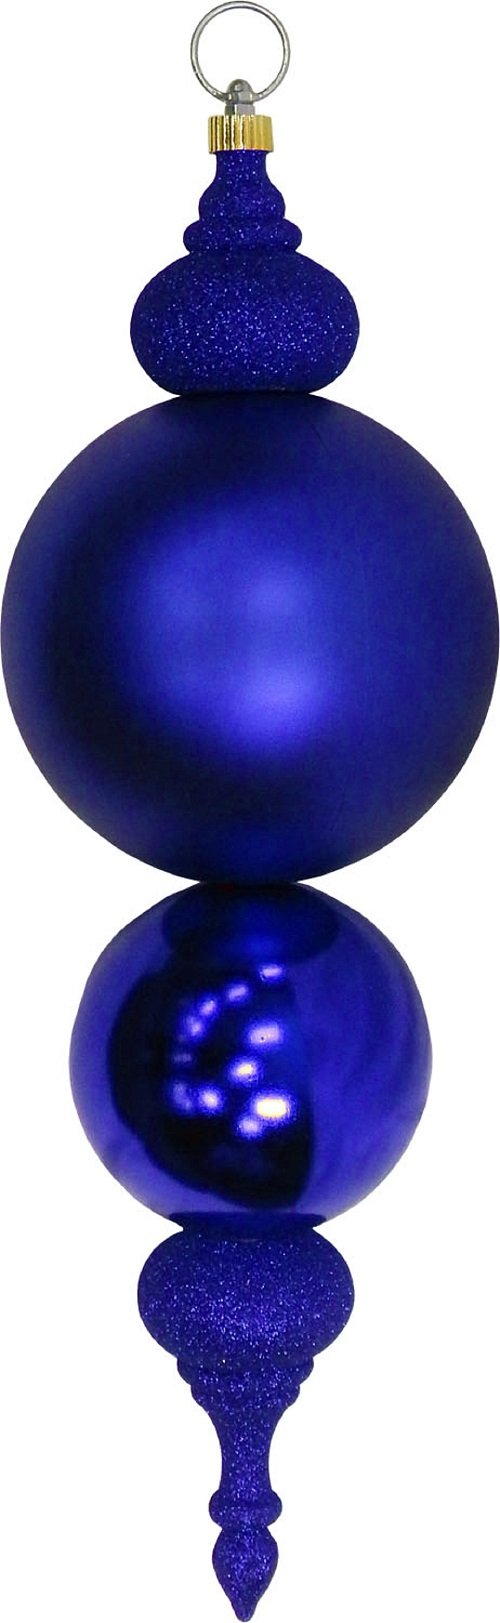 Christmas by Krebs Giant Commercial Shatterproof UV Resistant Plastic Christmas Finial Ornament Wedding Party Event Decor, 24'' (610mm), Blue, 2 Pieces by Christmas By Krebs